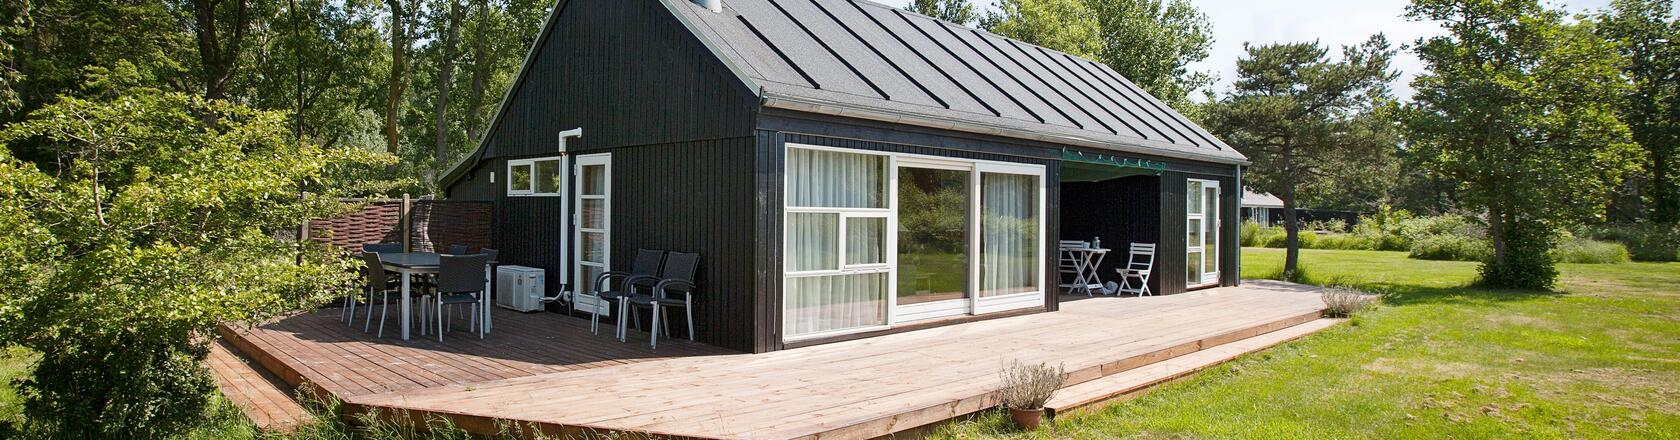 Vesternæs in Denmark - Rent a holiday home  with DanCenter